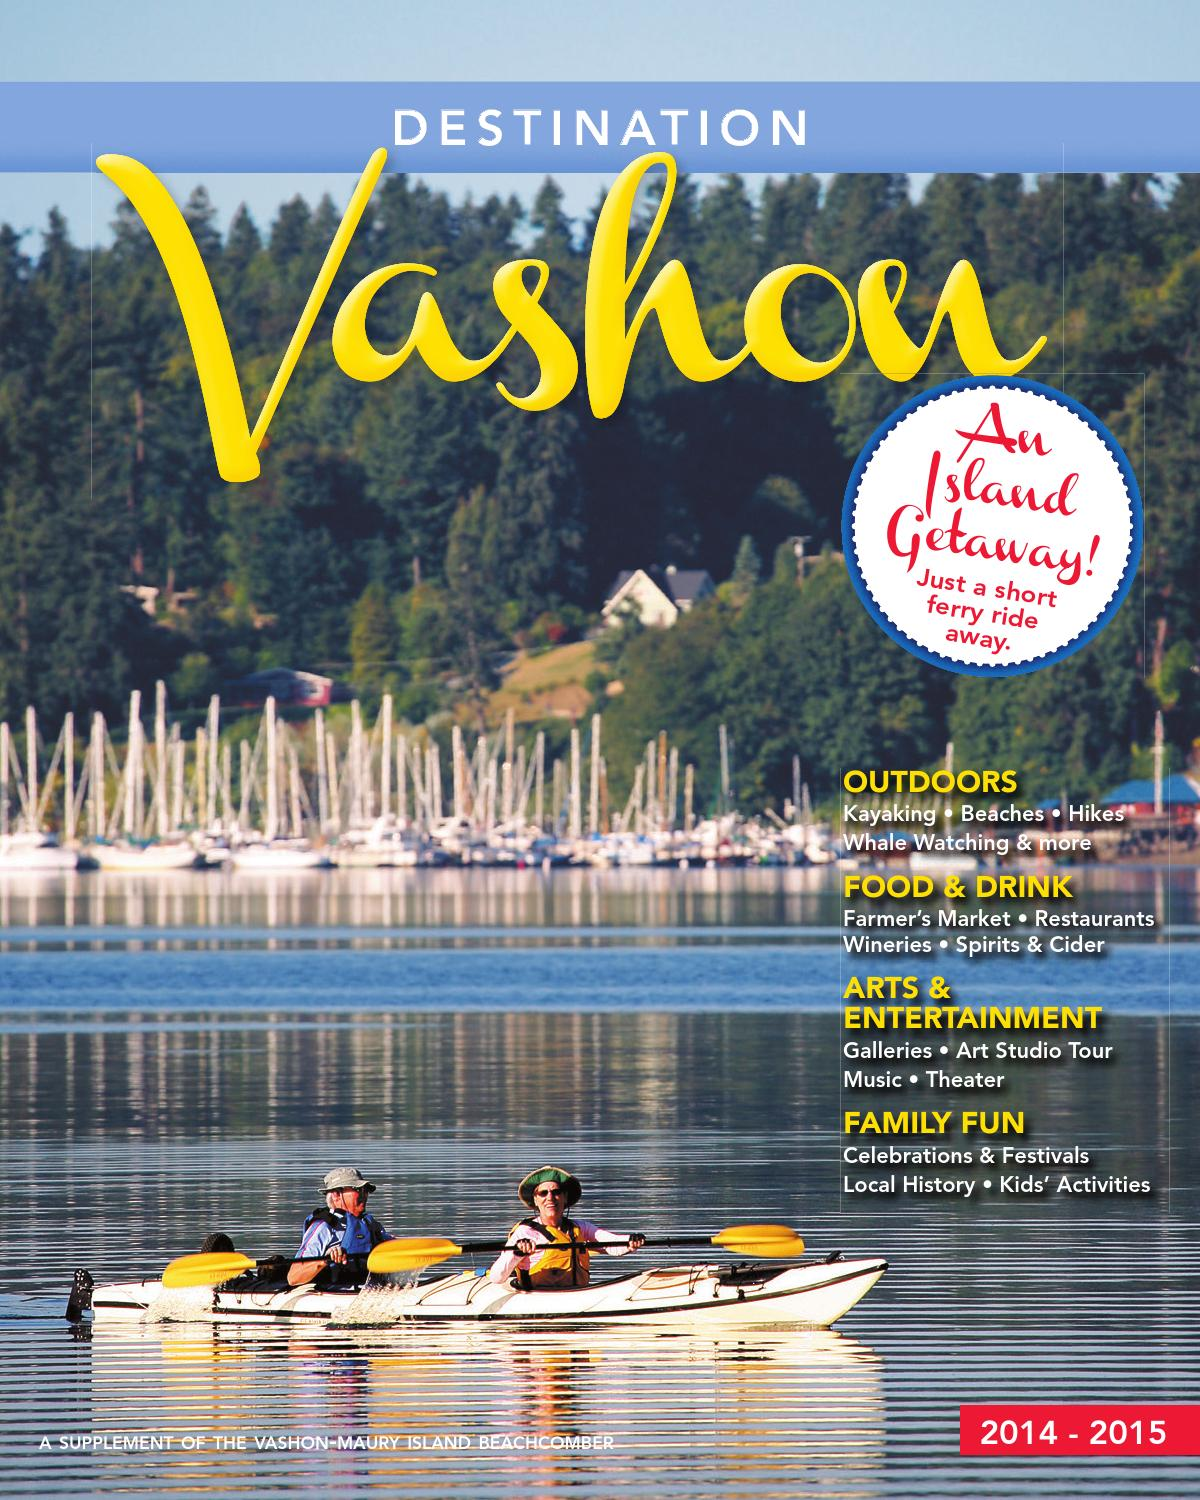 Destination guides destination vashon 2014 2015 by sound destination guides destination vashon 2014 2015 by sound publishing issuu nvjuhfo Choice Image